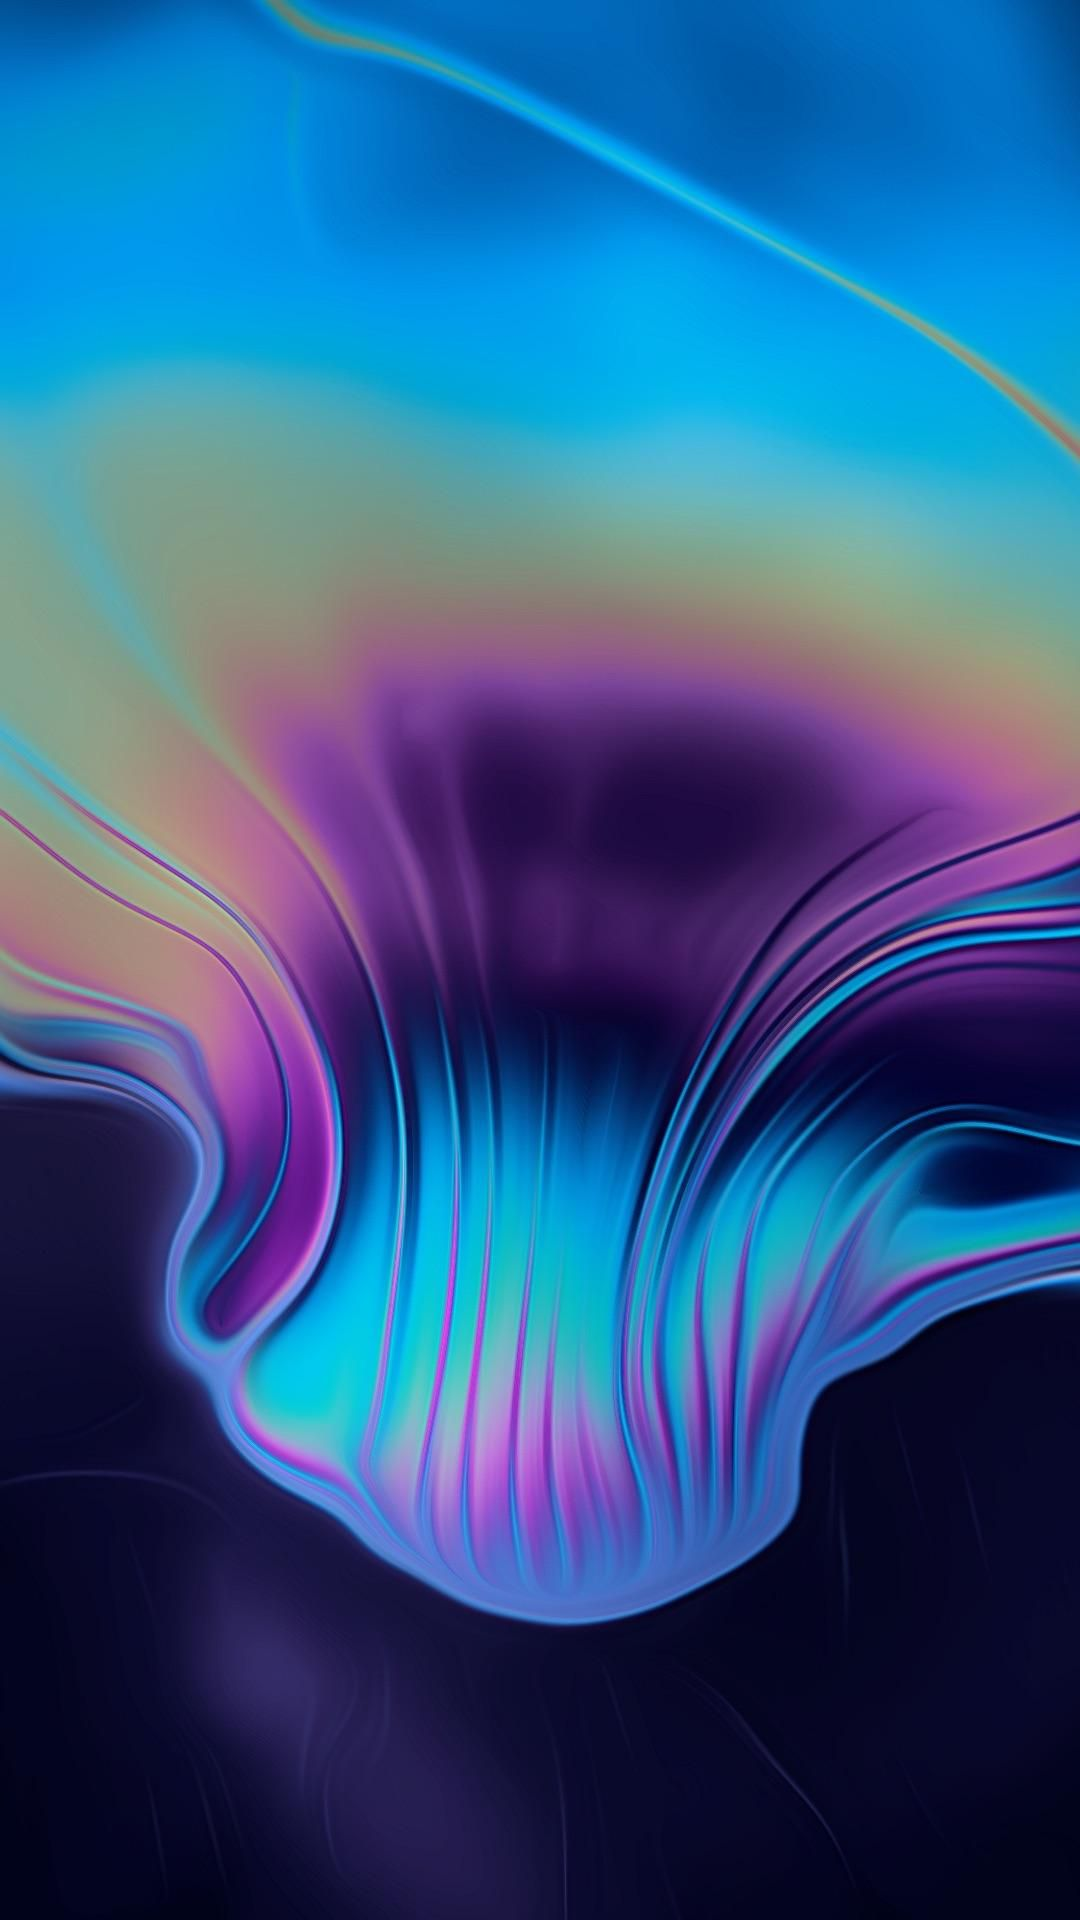 Imac Pro Wallpaper Modded Thanks To Ar7 I Redd It Submitted By Jolehp To R Iwallpaper Watercolor Desktop Wallpaper Amazing Hd Wallpapers Iphone Wallpaper